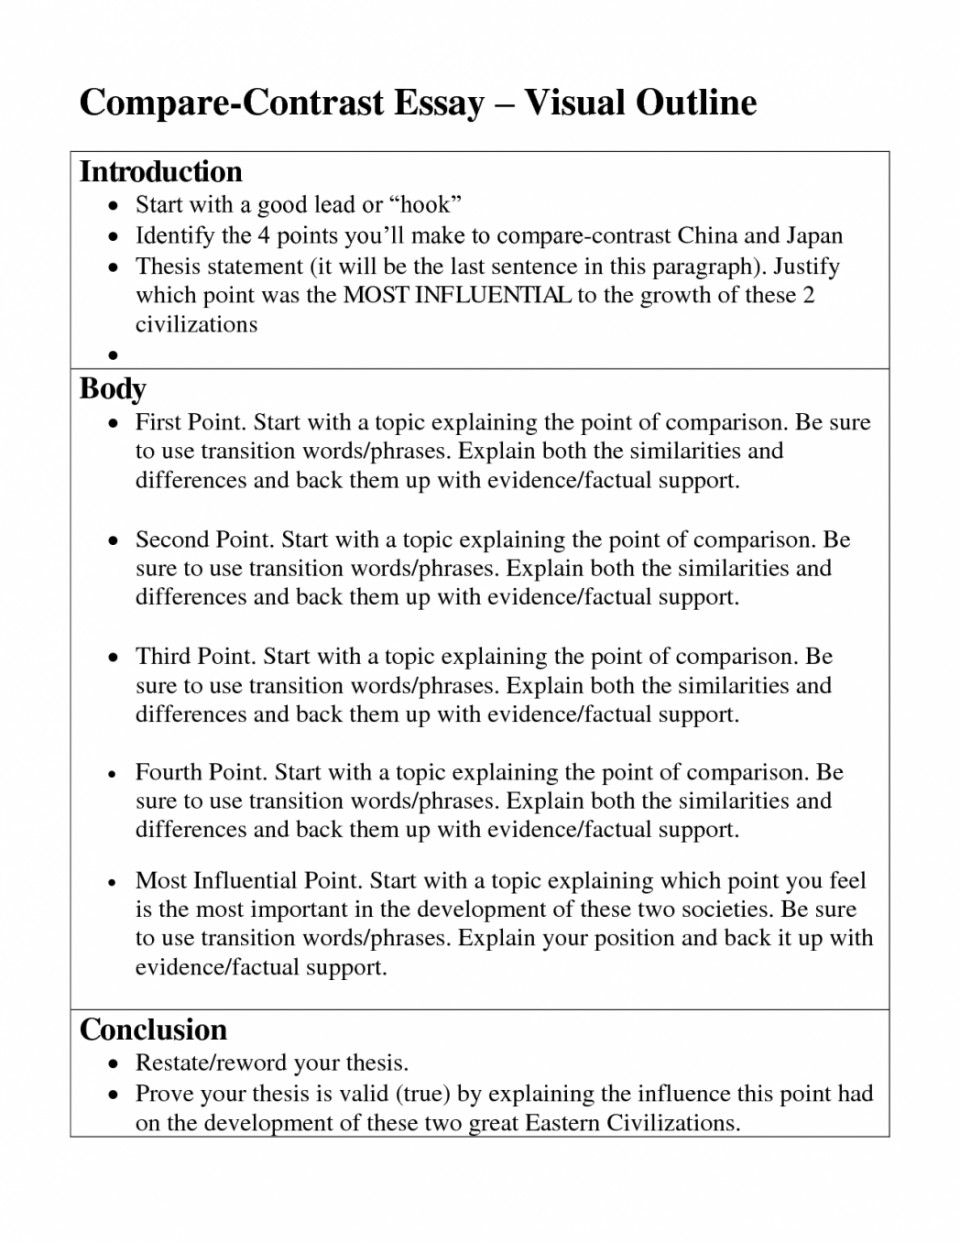 009 Compare And Contrast Essay Topics For High School Students English College Pdf Research Paper 1048x1356 Fantastic Easy Sports 960